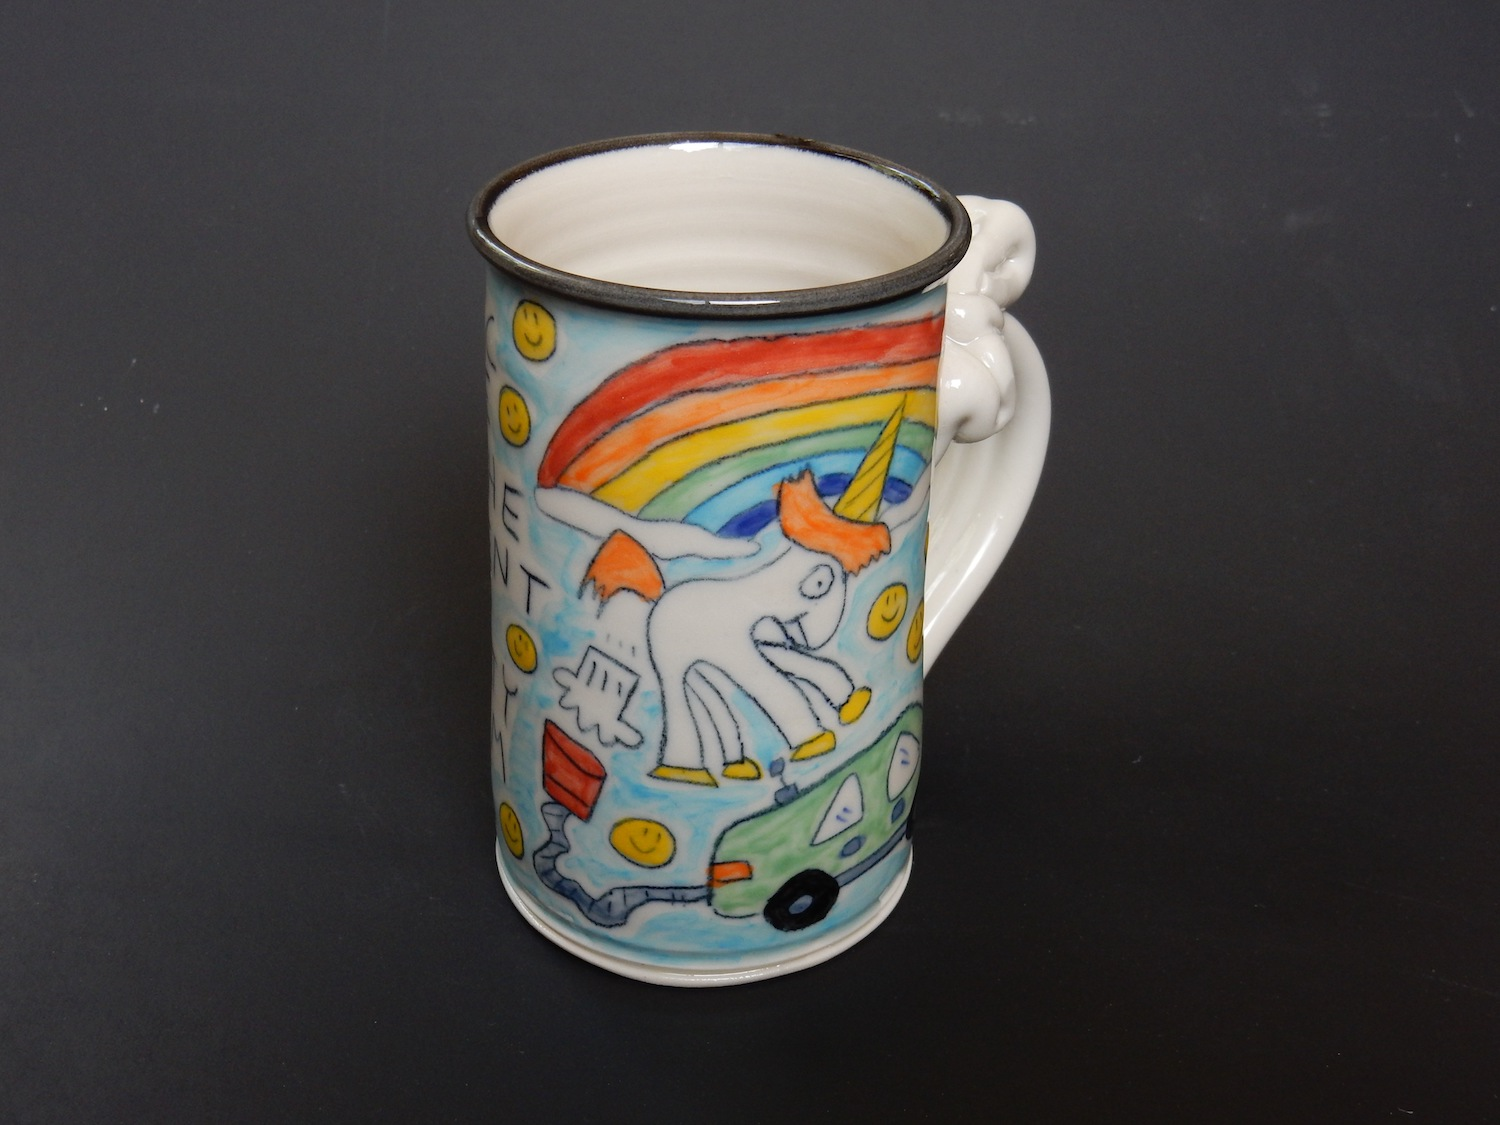 Farting Unicorn mug by Tom Edwards. Courtesy the artist